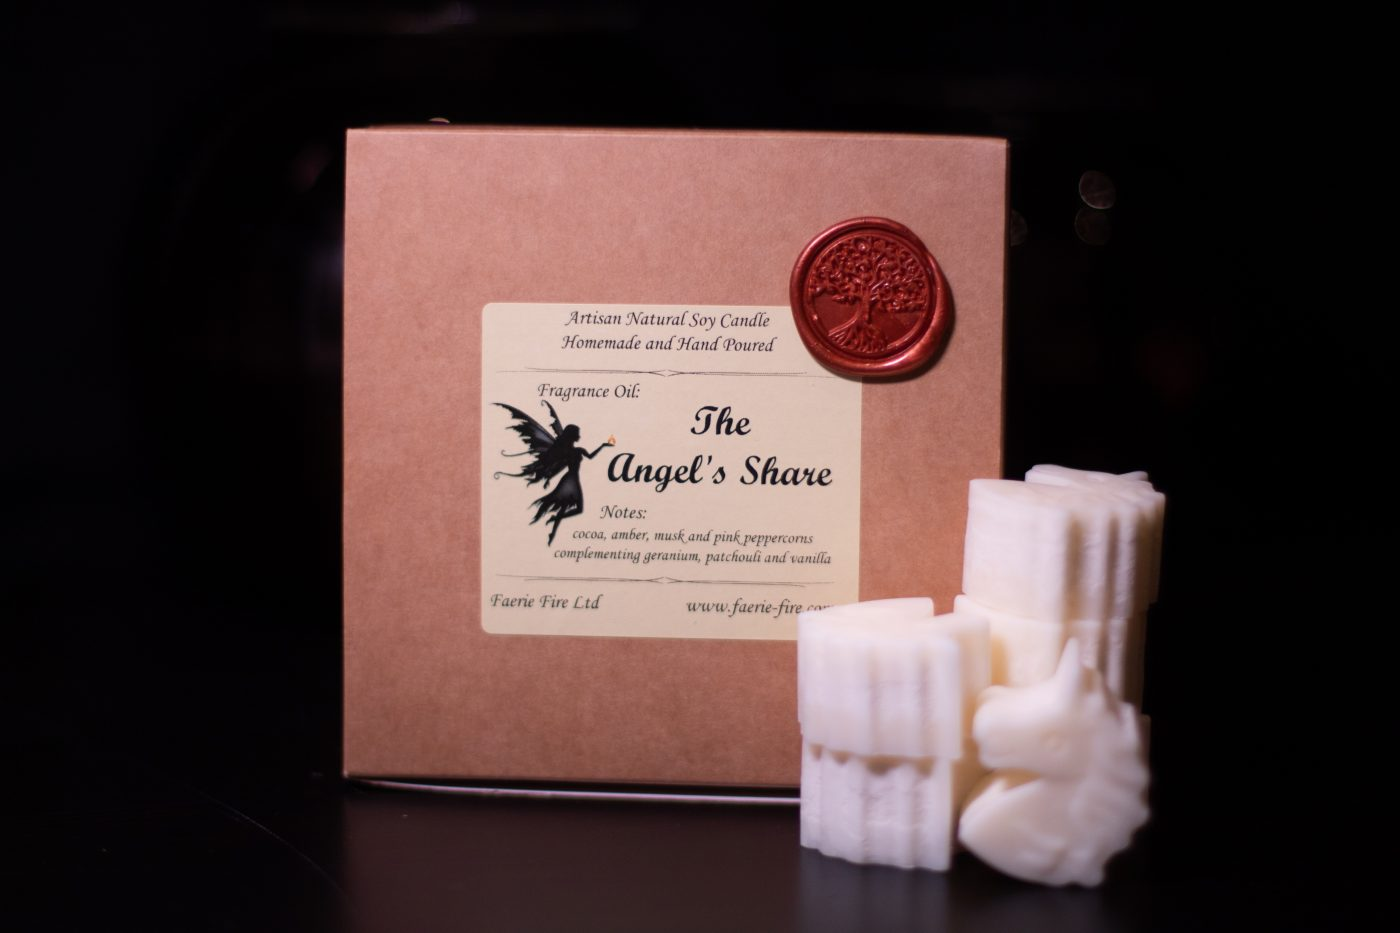 The Angels Share Soy Wax Melts scaled